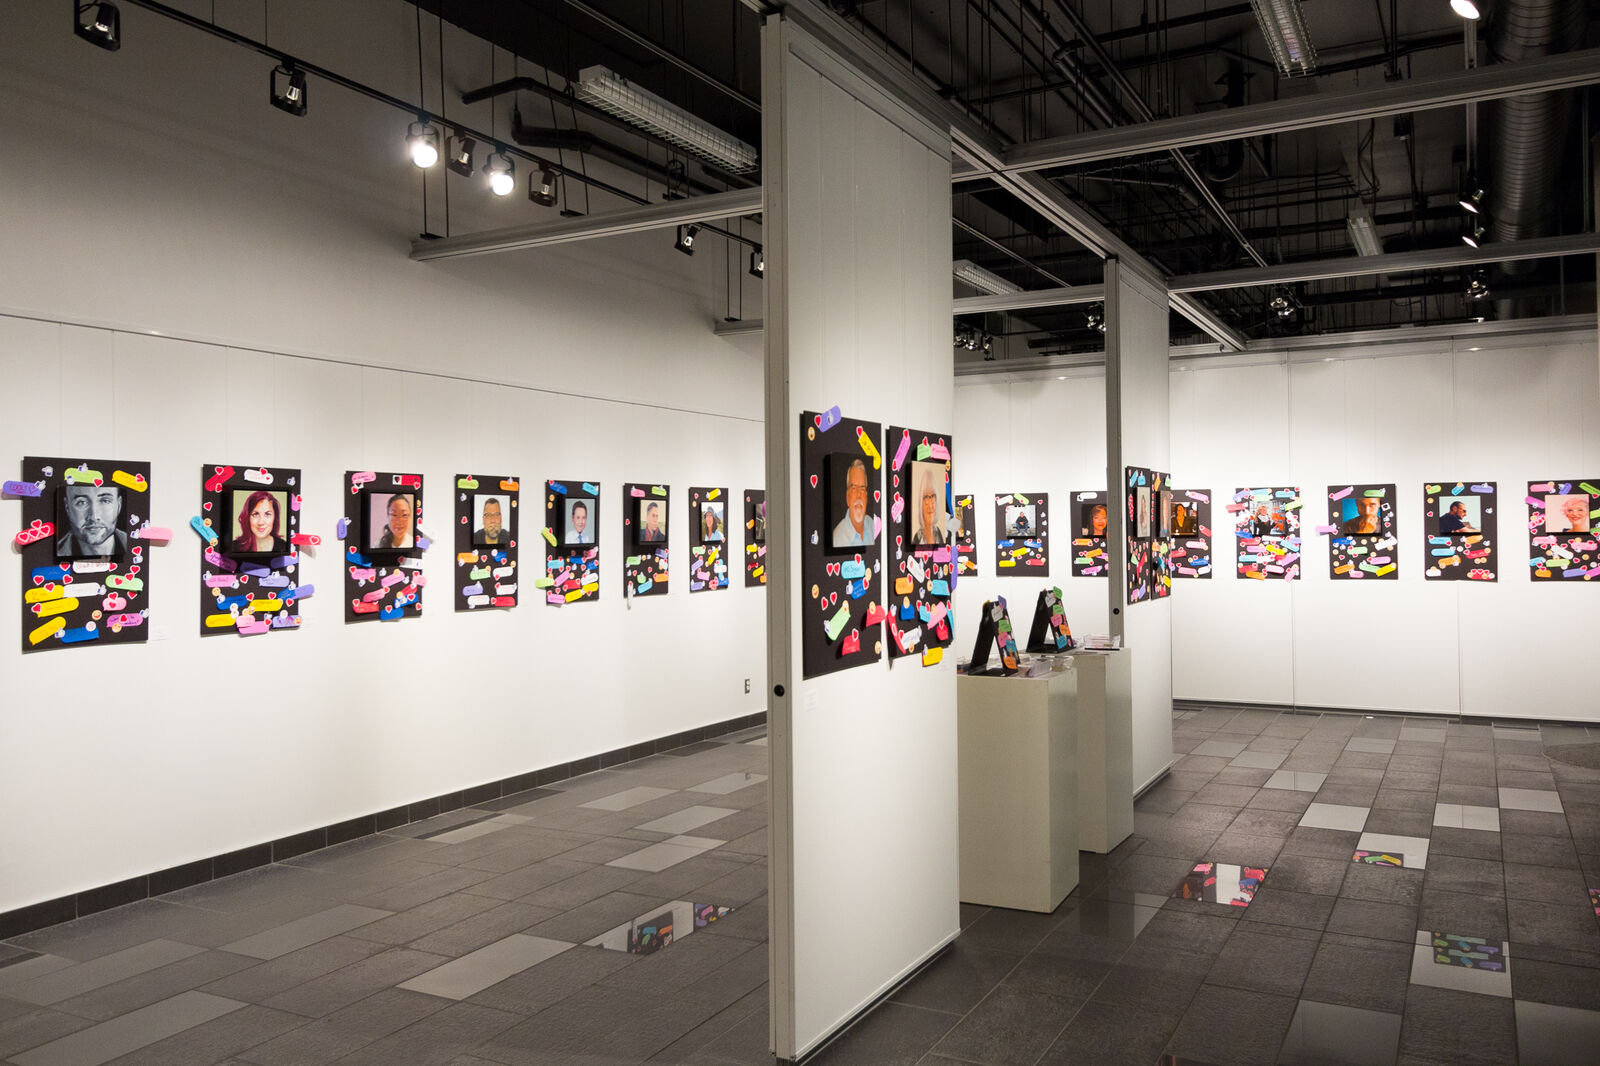 Photo of the Social portraits installation